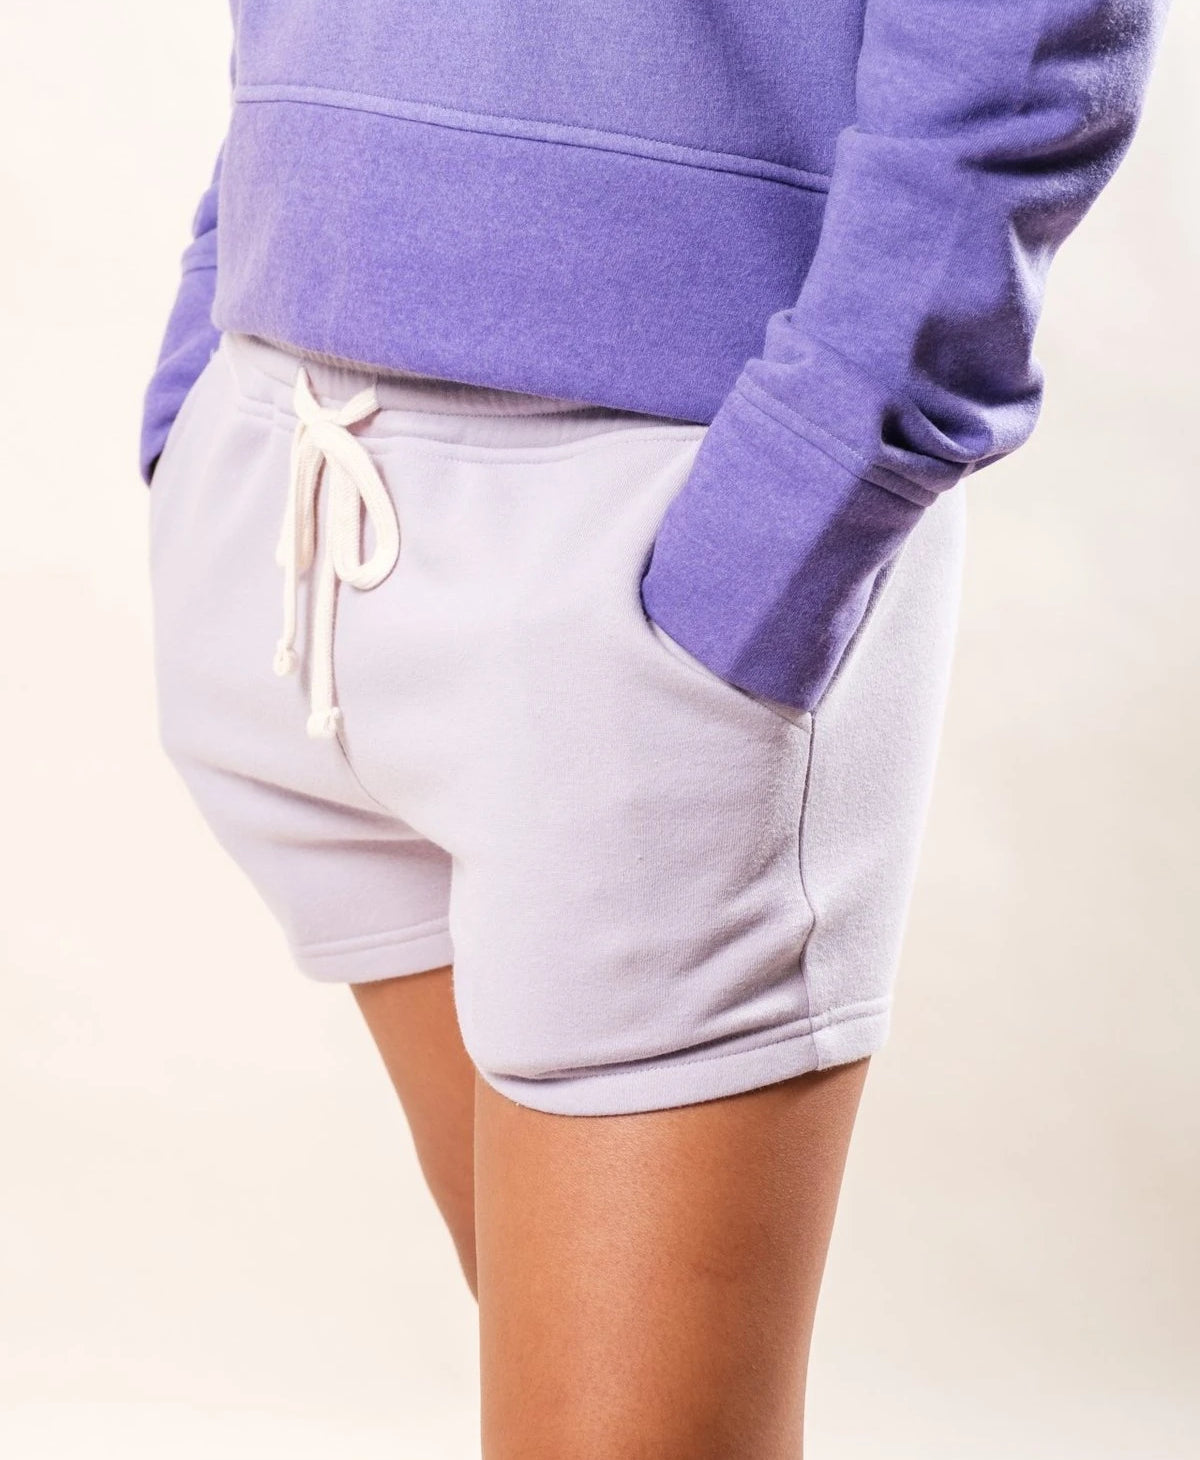 WOMEN'S LAVENDER SHORTS